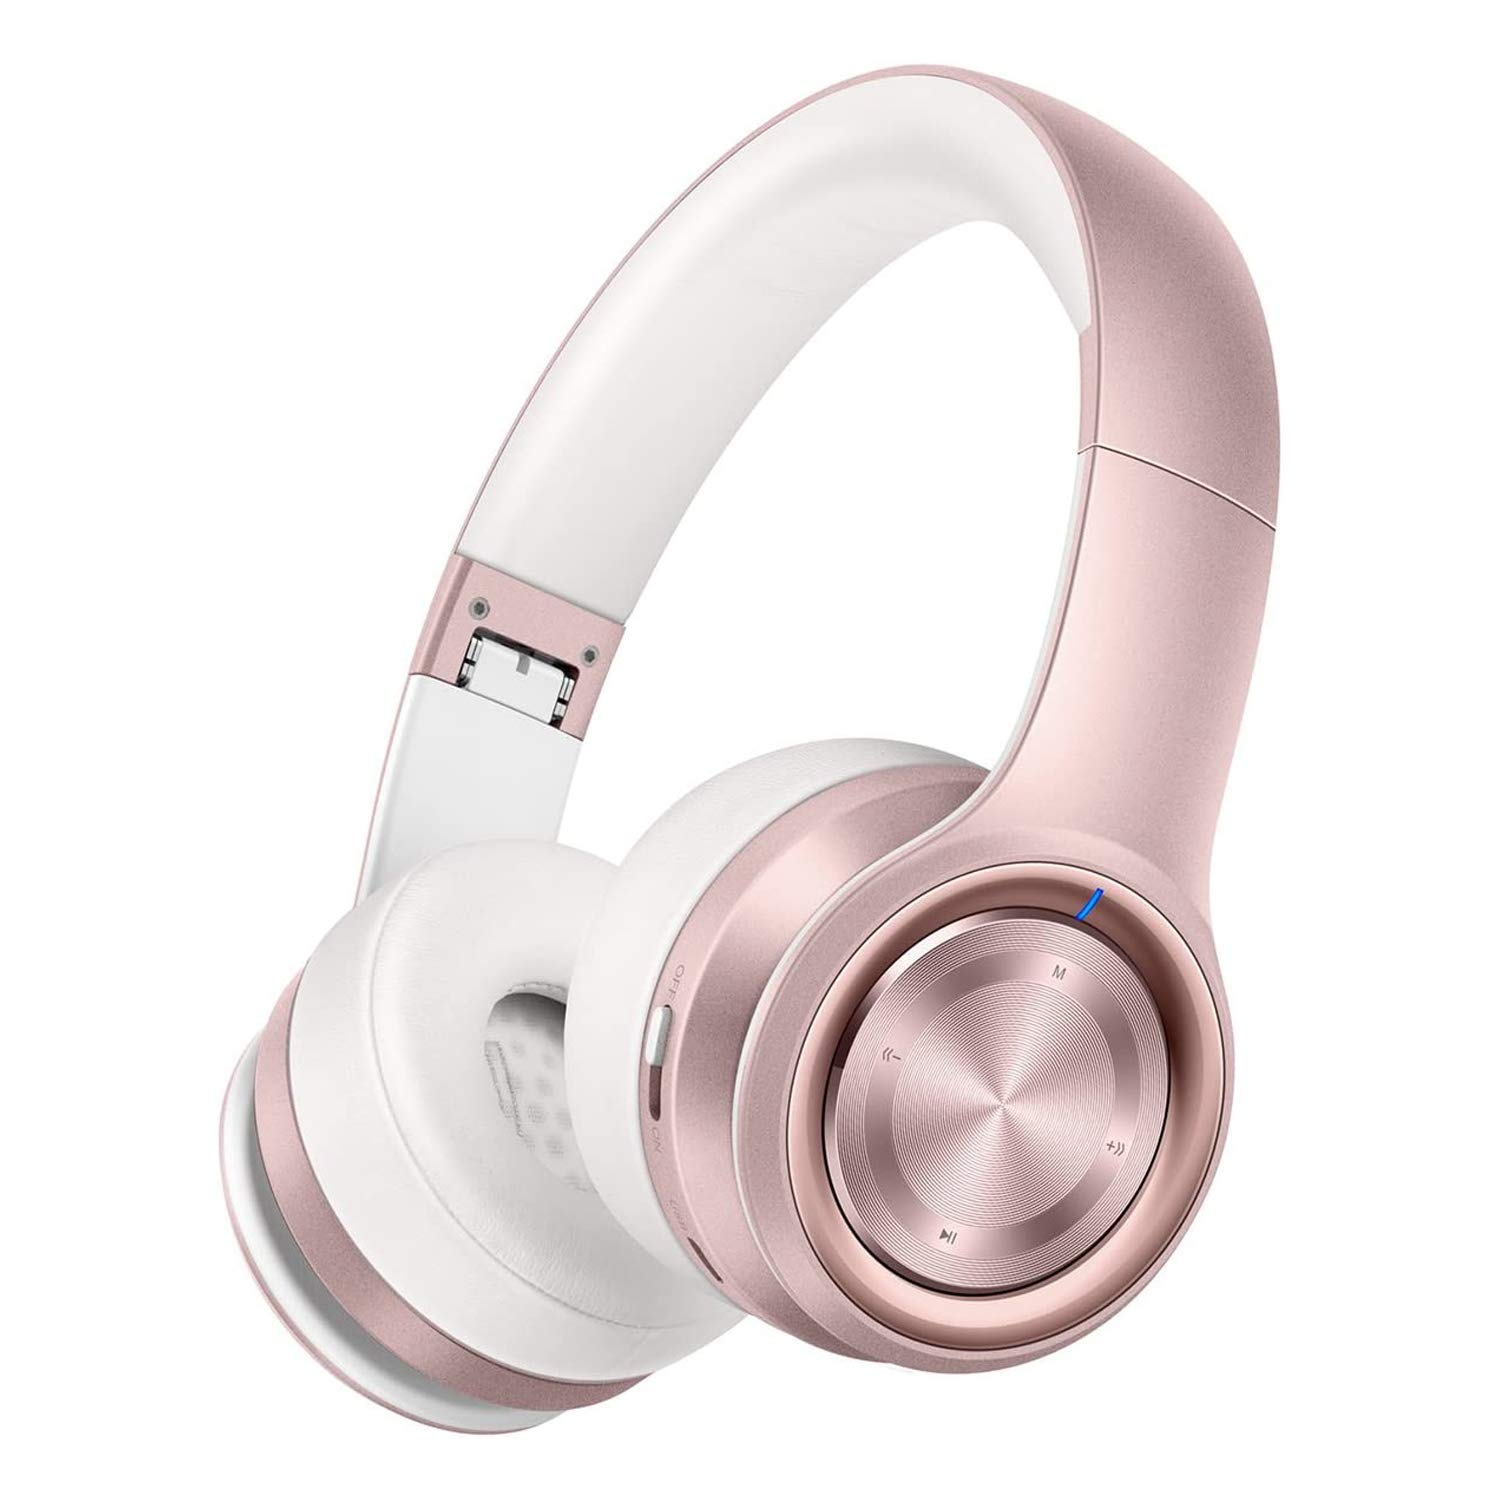 P26 Bluetooth Headphones Over Ear, Girl's Fashion Headphones 80H Playtime Wireless Hi-Fi Stereo Noise Cancelling Cordless Headset with Deep Bass and Mic, Support FM/TF for TV/Smart Phone/PC/Pad Pink